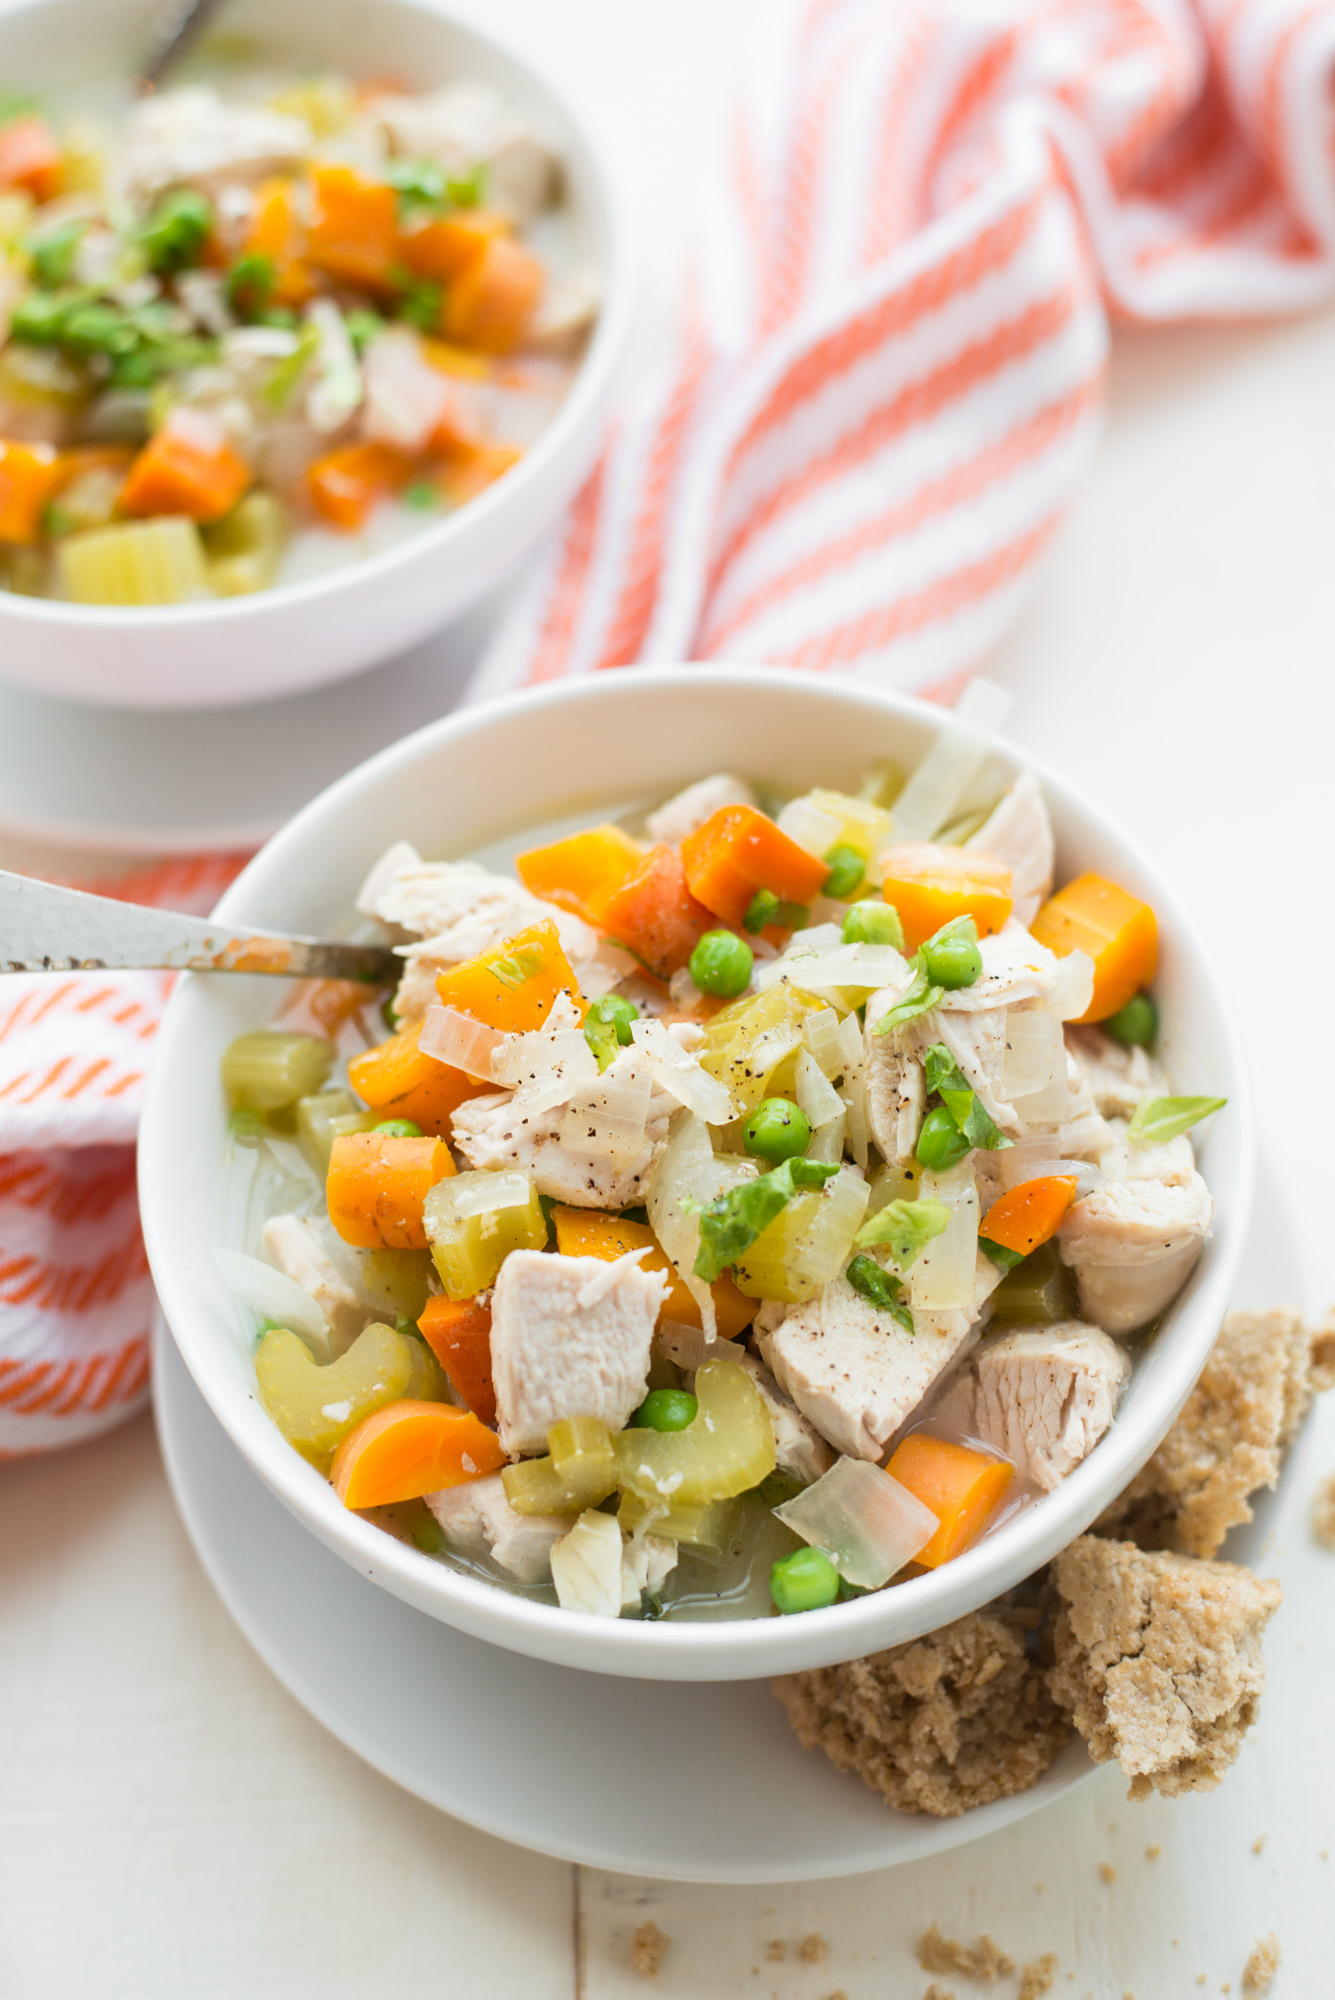 Packed with chicken and vegetables, Instant Pot + Slow Cooker Chicken Pot Pie (Gluten-Free, Dairy-Free) is made with real food ingredients and tastes amazing! paleo, whole30, grain-free, gluten-free, dairy-free